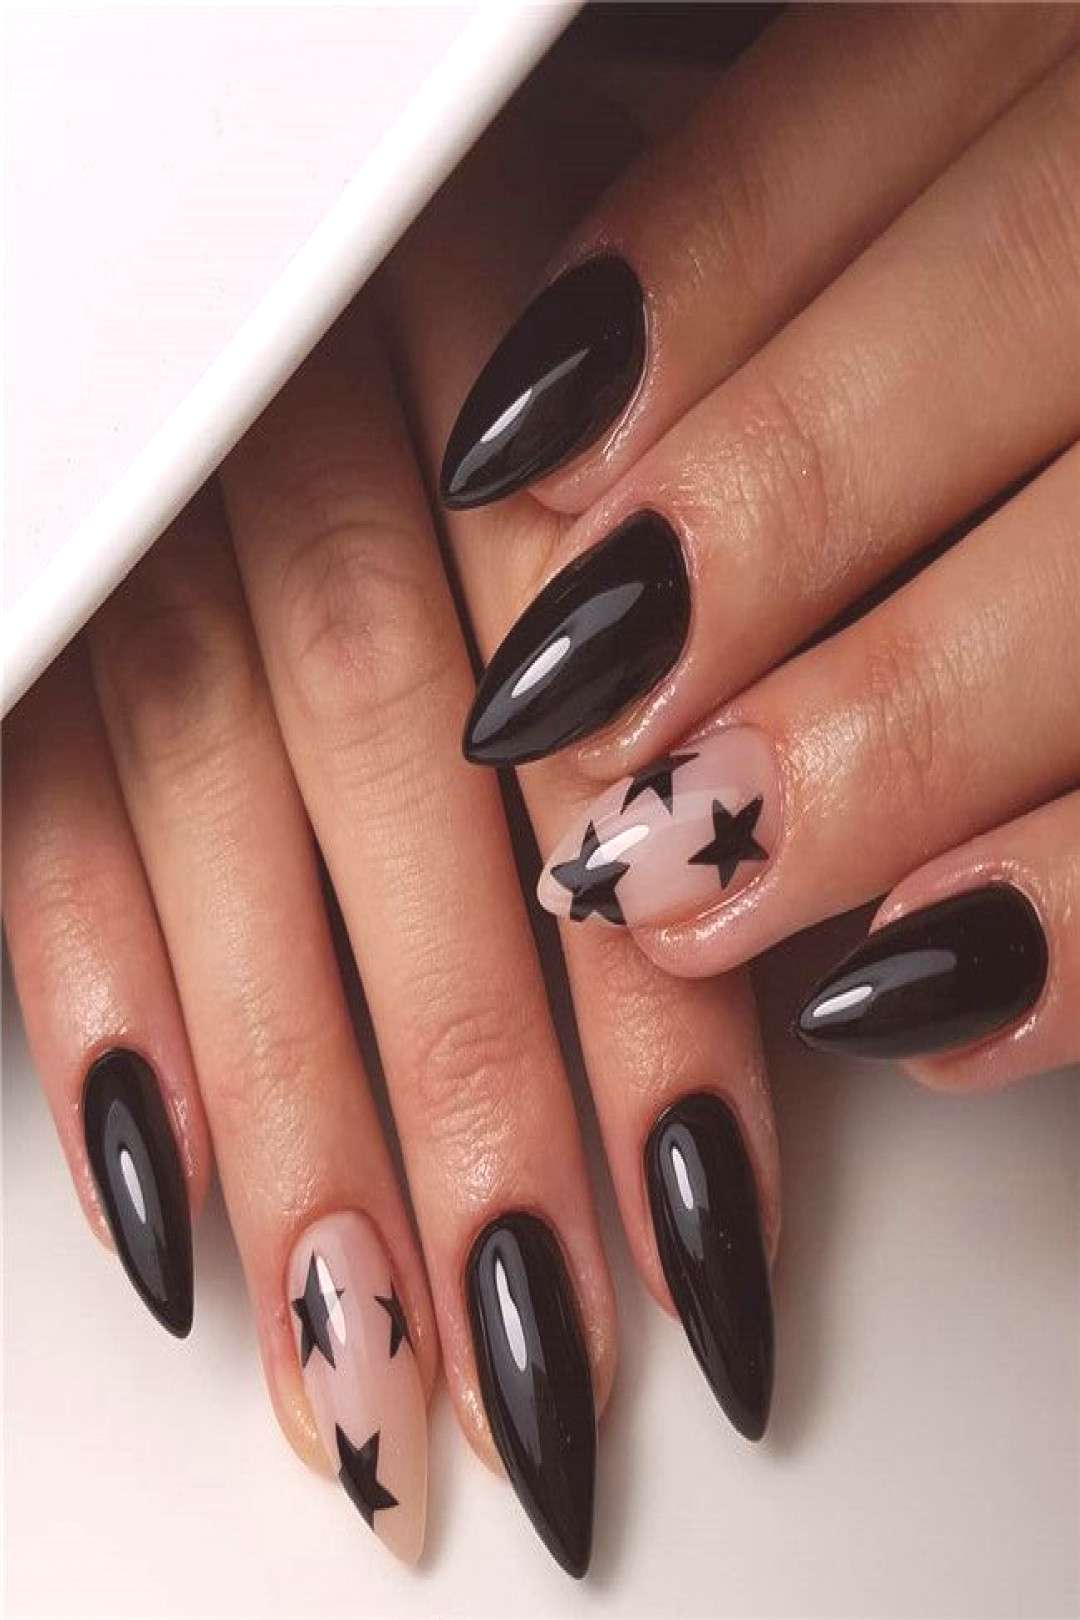 42 Short And Long Acrylic Almond Nails Designs In New Year Almond nail is one of the popular nail s